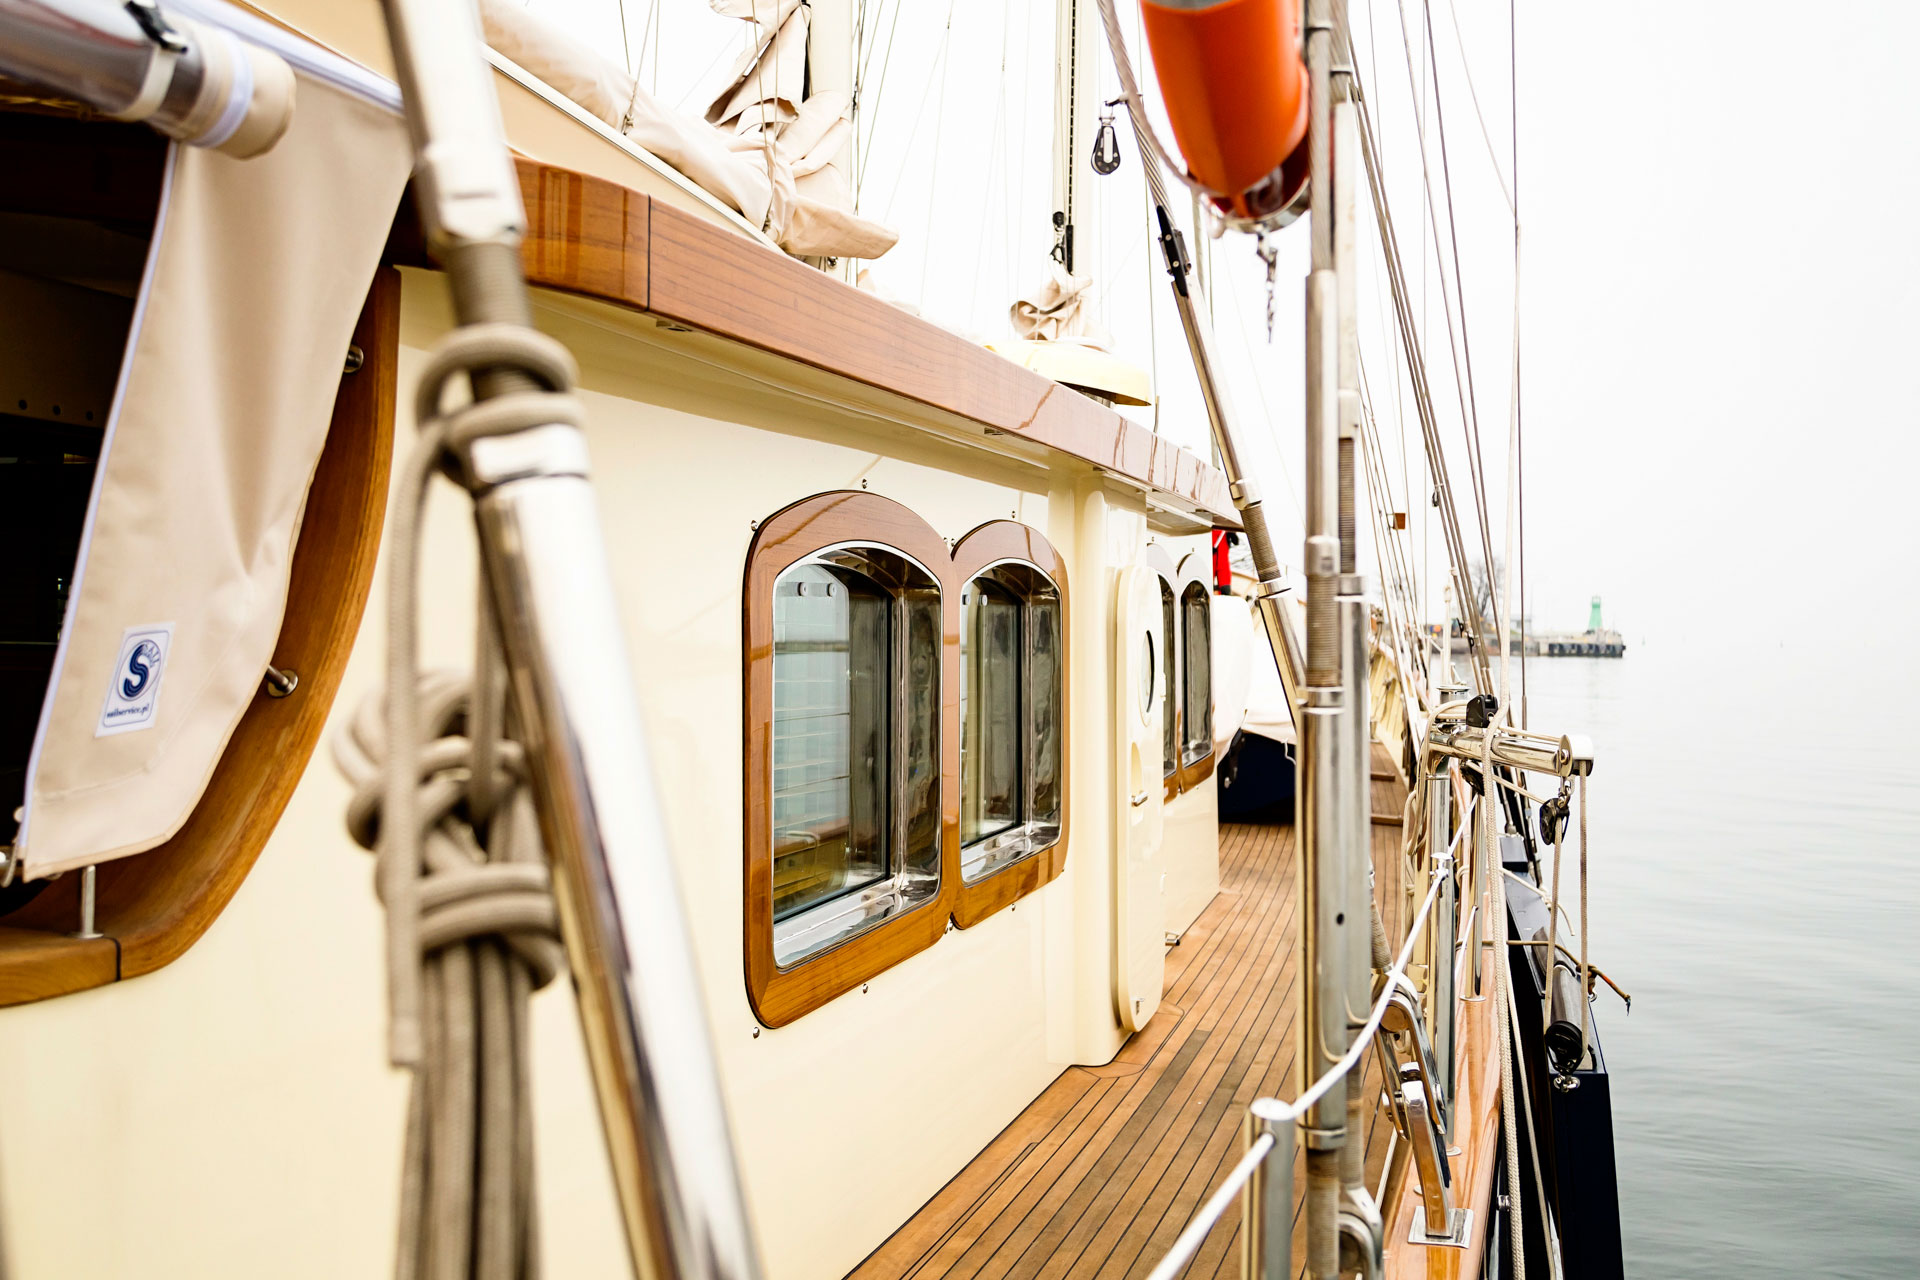 Details of Conrad S/Y Malcom Miller's completely new deck after its refit.